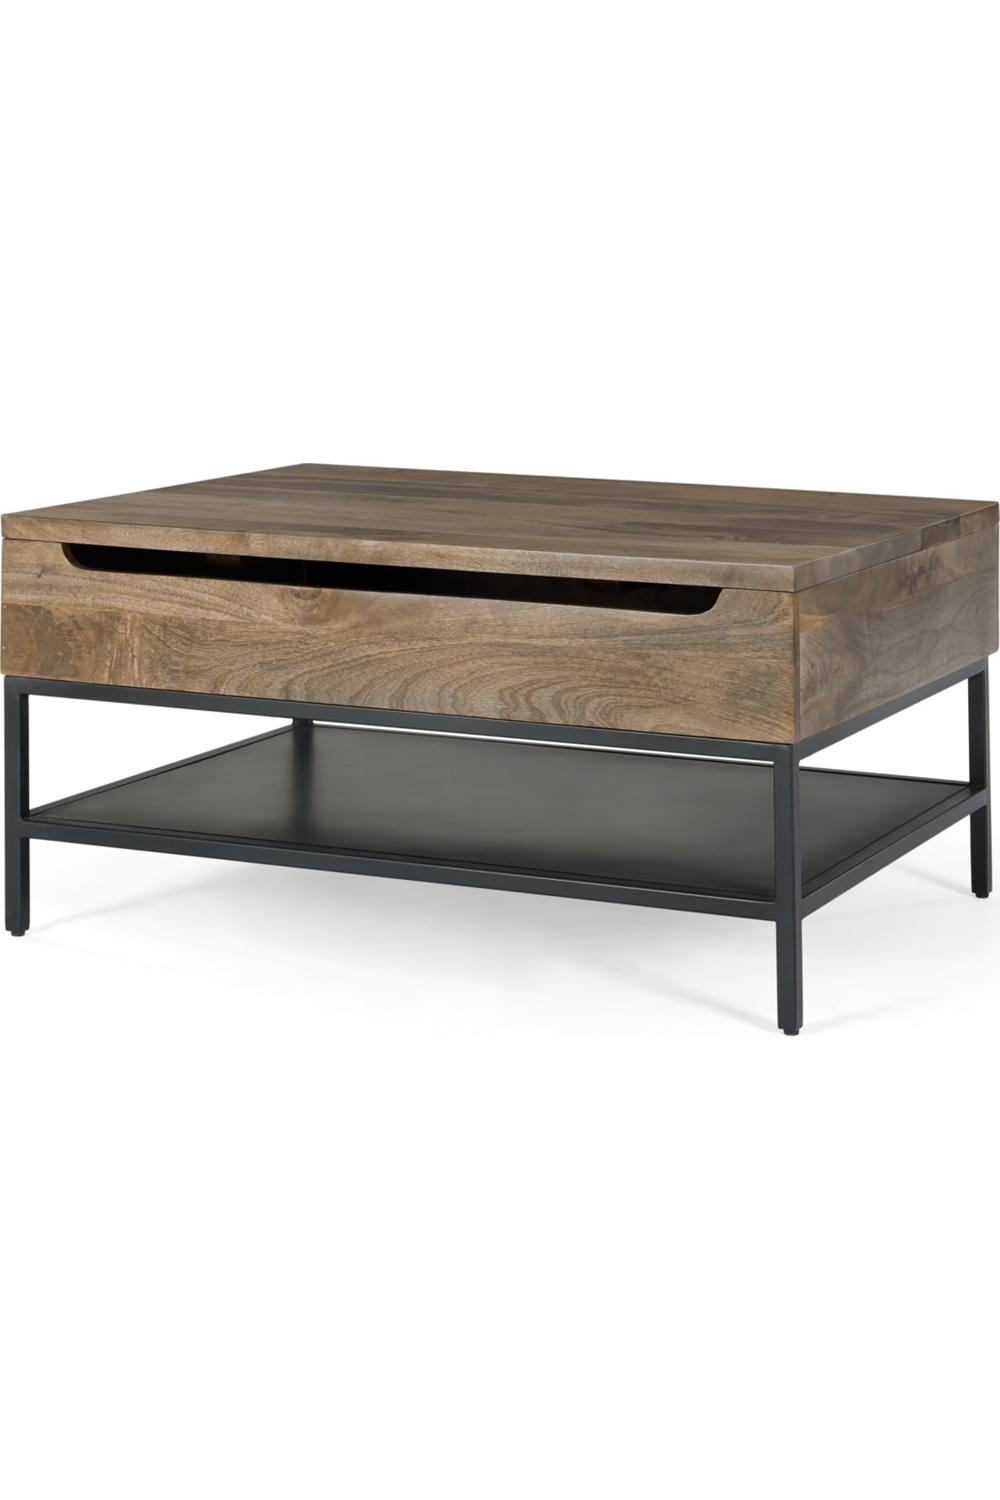 Light Wood Coffee Table With Drawers Coffee Table Wood Mango Wood Coffee Table Coffee Table With Drawers [ 1900 x 1900 Pixel ]